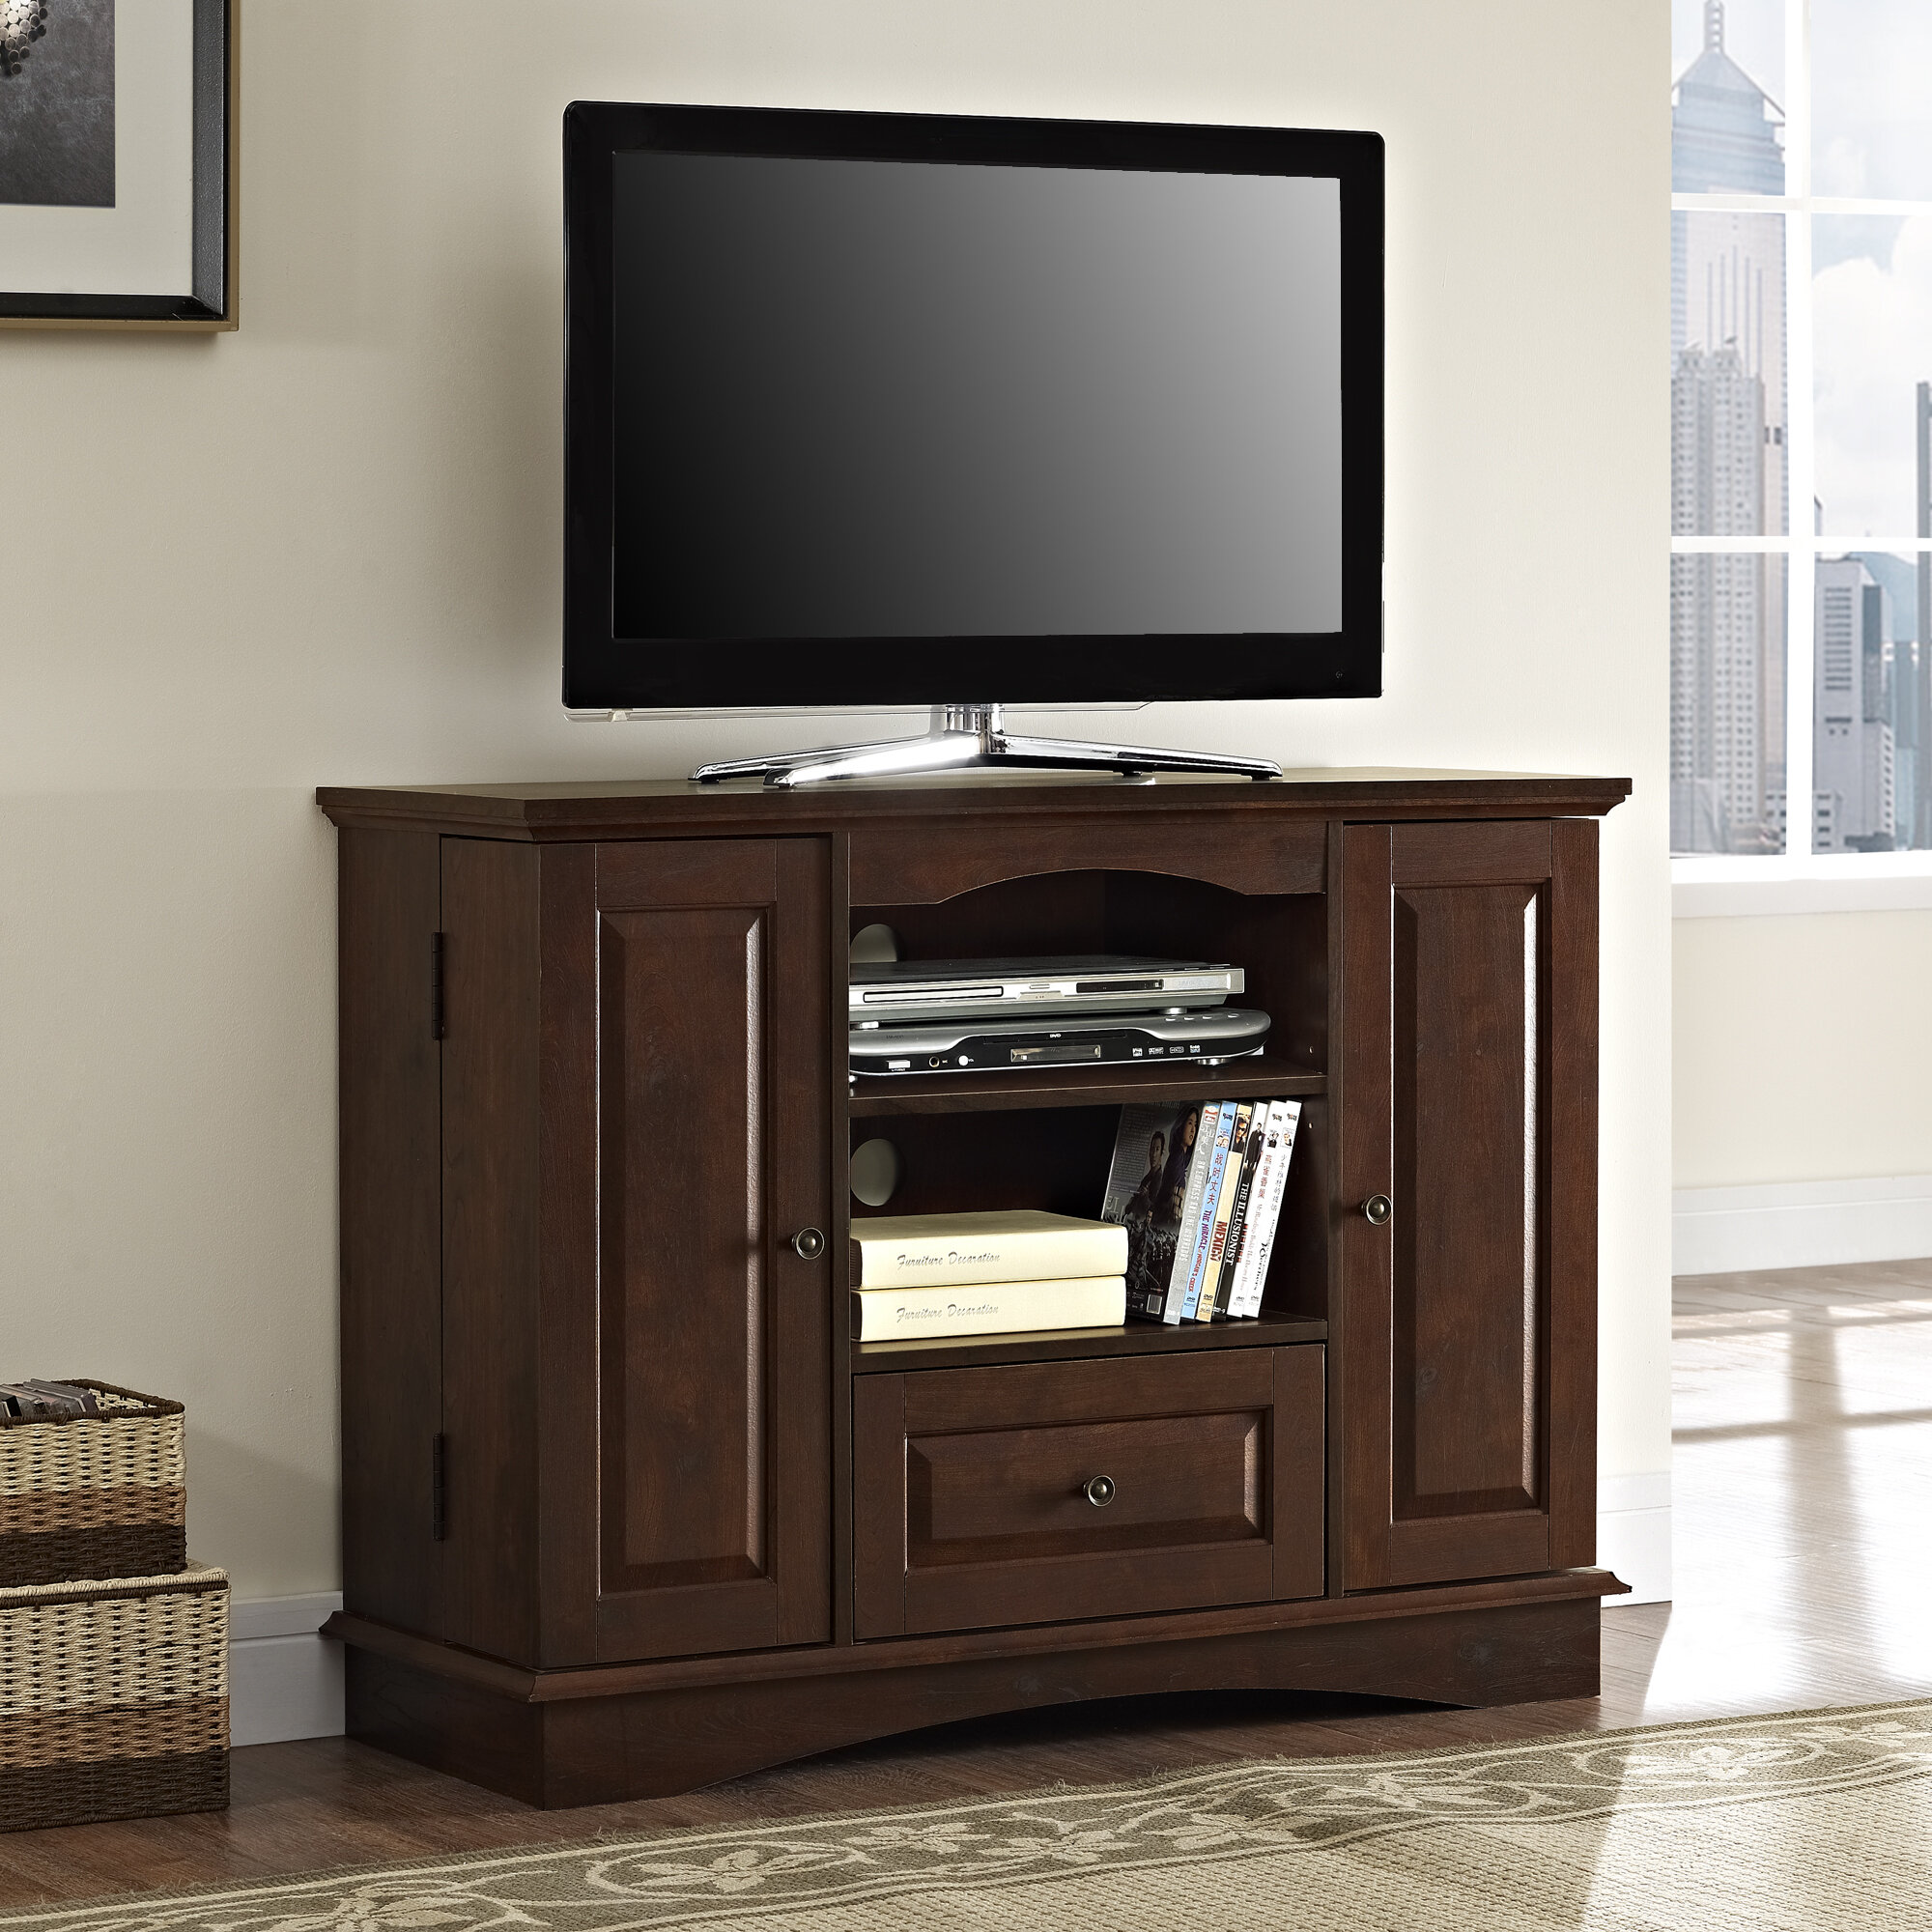 Charlton Home Phillipston Tv Stand For Tvs Up To 48 Reviews Wayfair